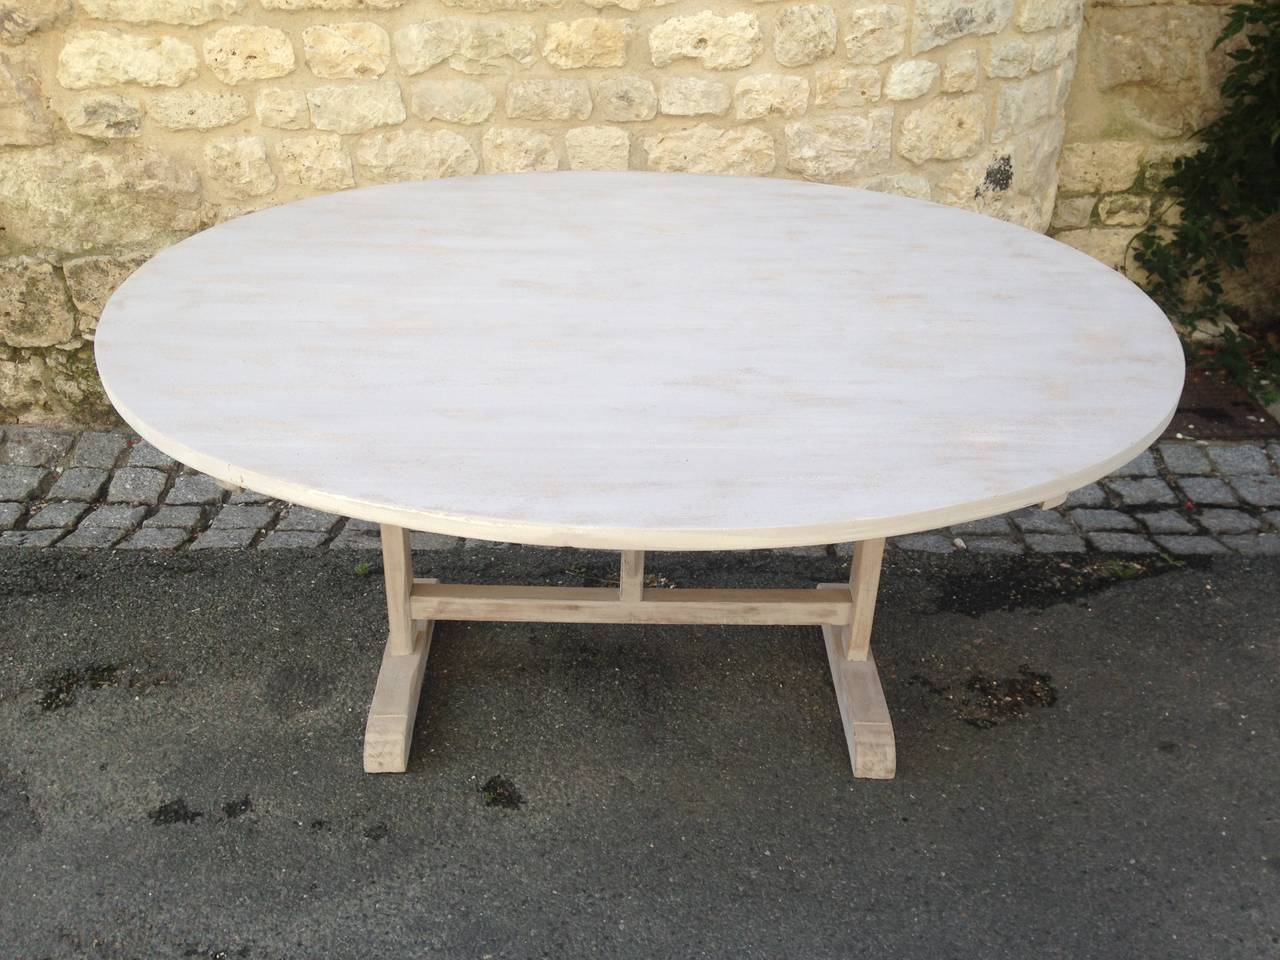 This stunning vendange (wine-tasting) table hails from the southwest of France and dates to the late 19th century. The original poplar top and oak base have been beautifully-refinished in a translucent pale grey milk paint that has been coated with